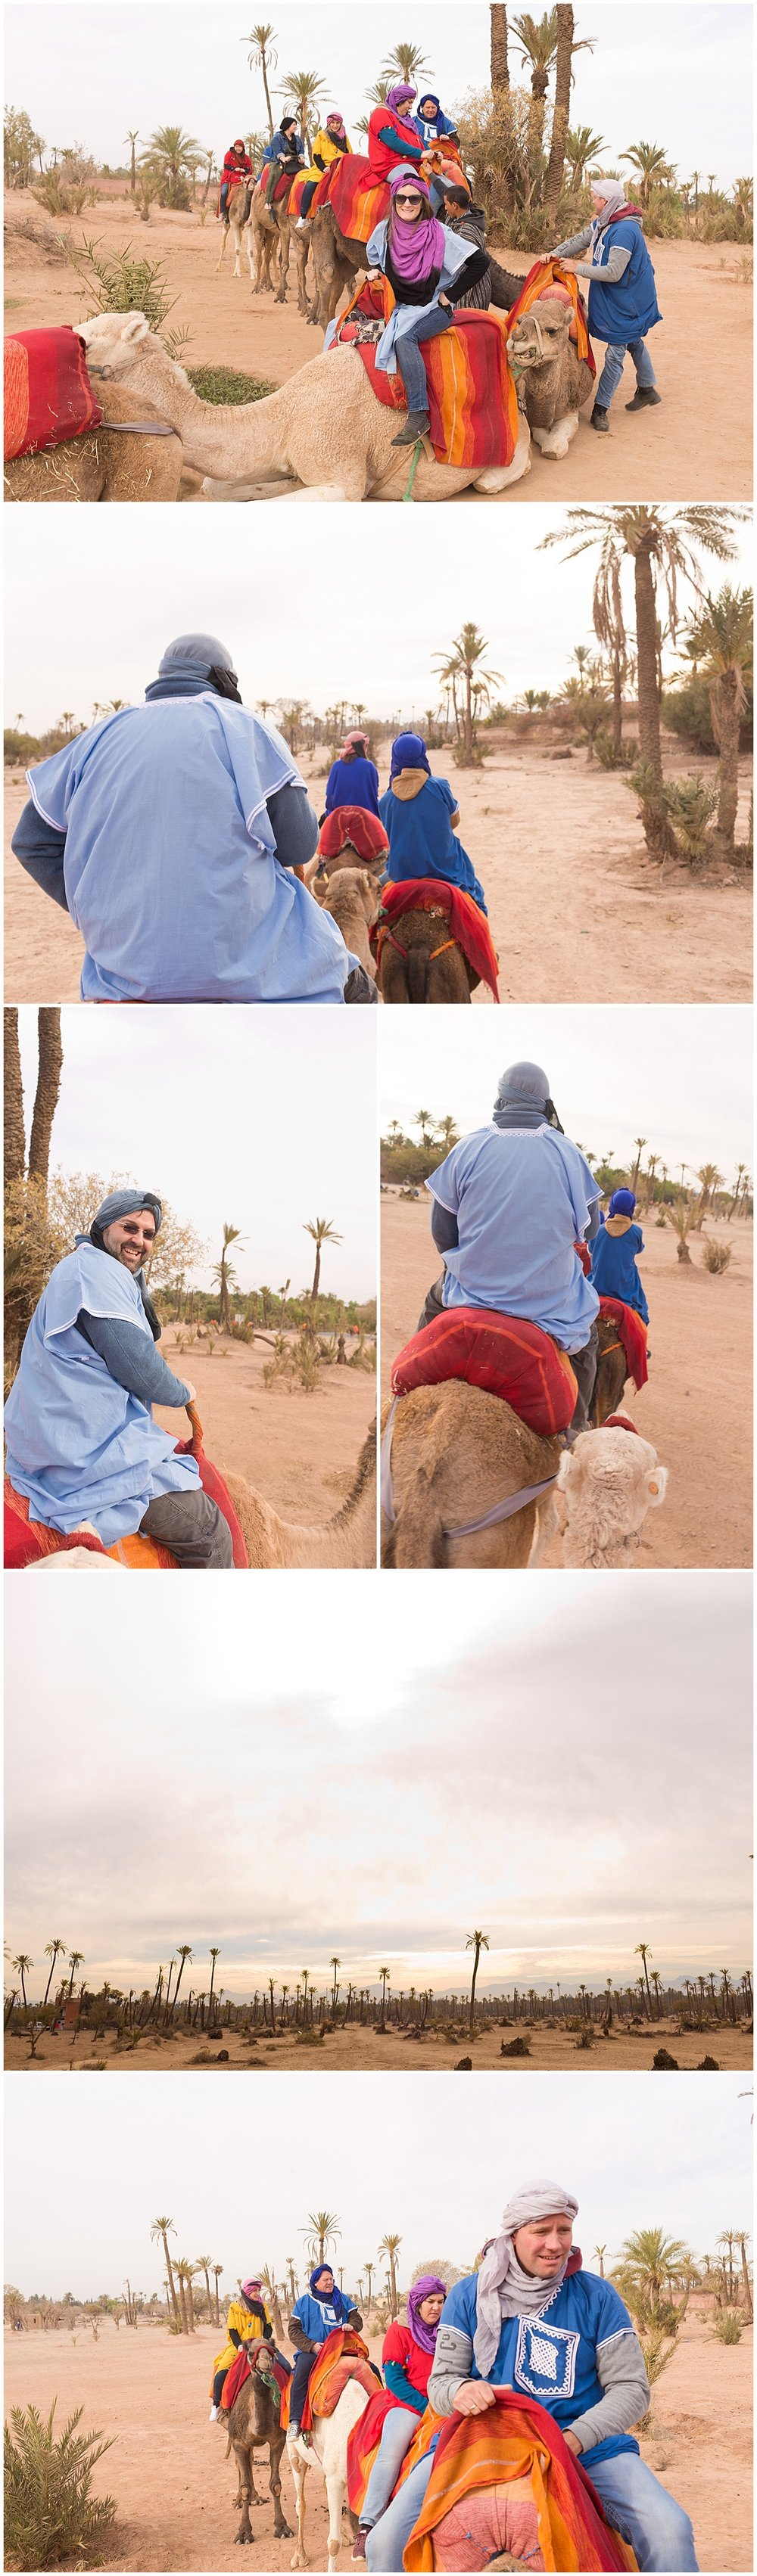 camel riding in Marrakesh, Morocco